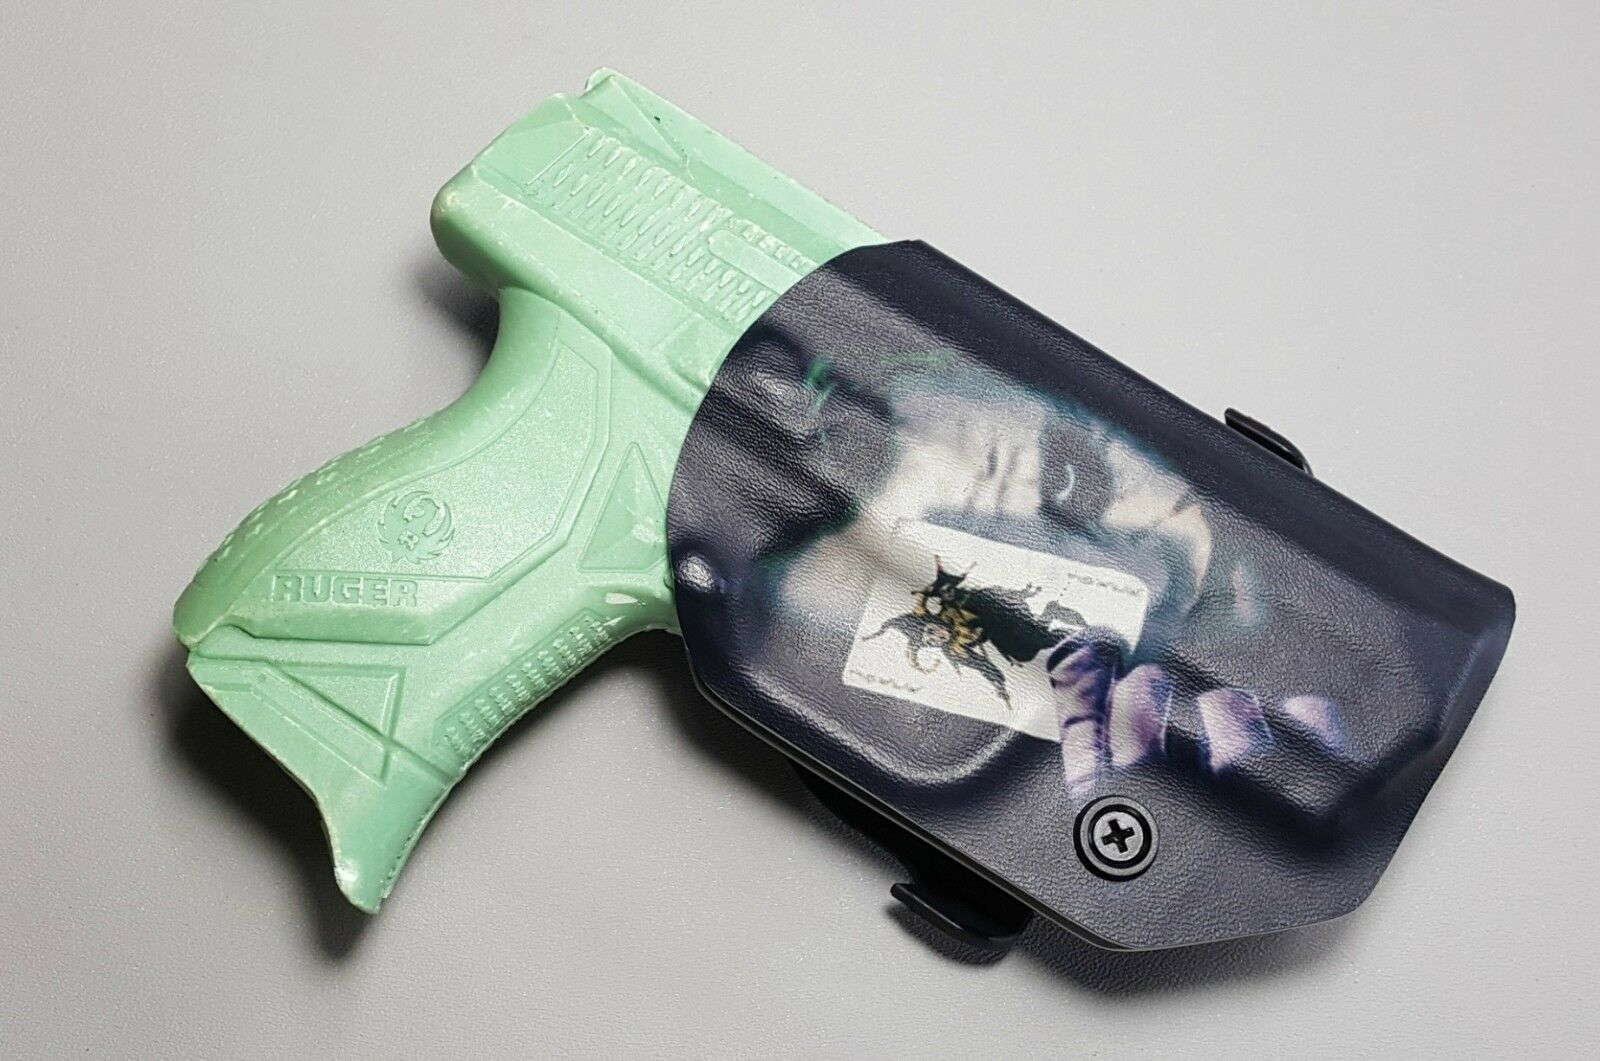 Dark Knight Joker Owb Kydex Holster .